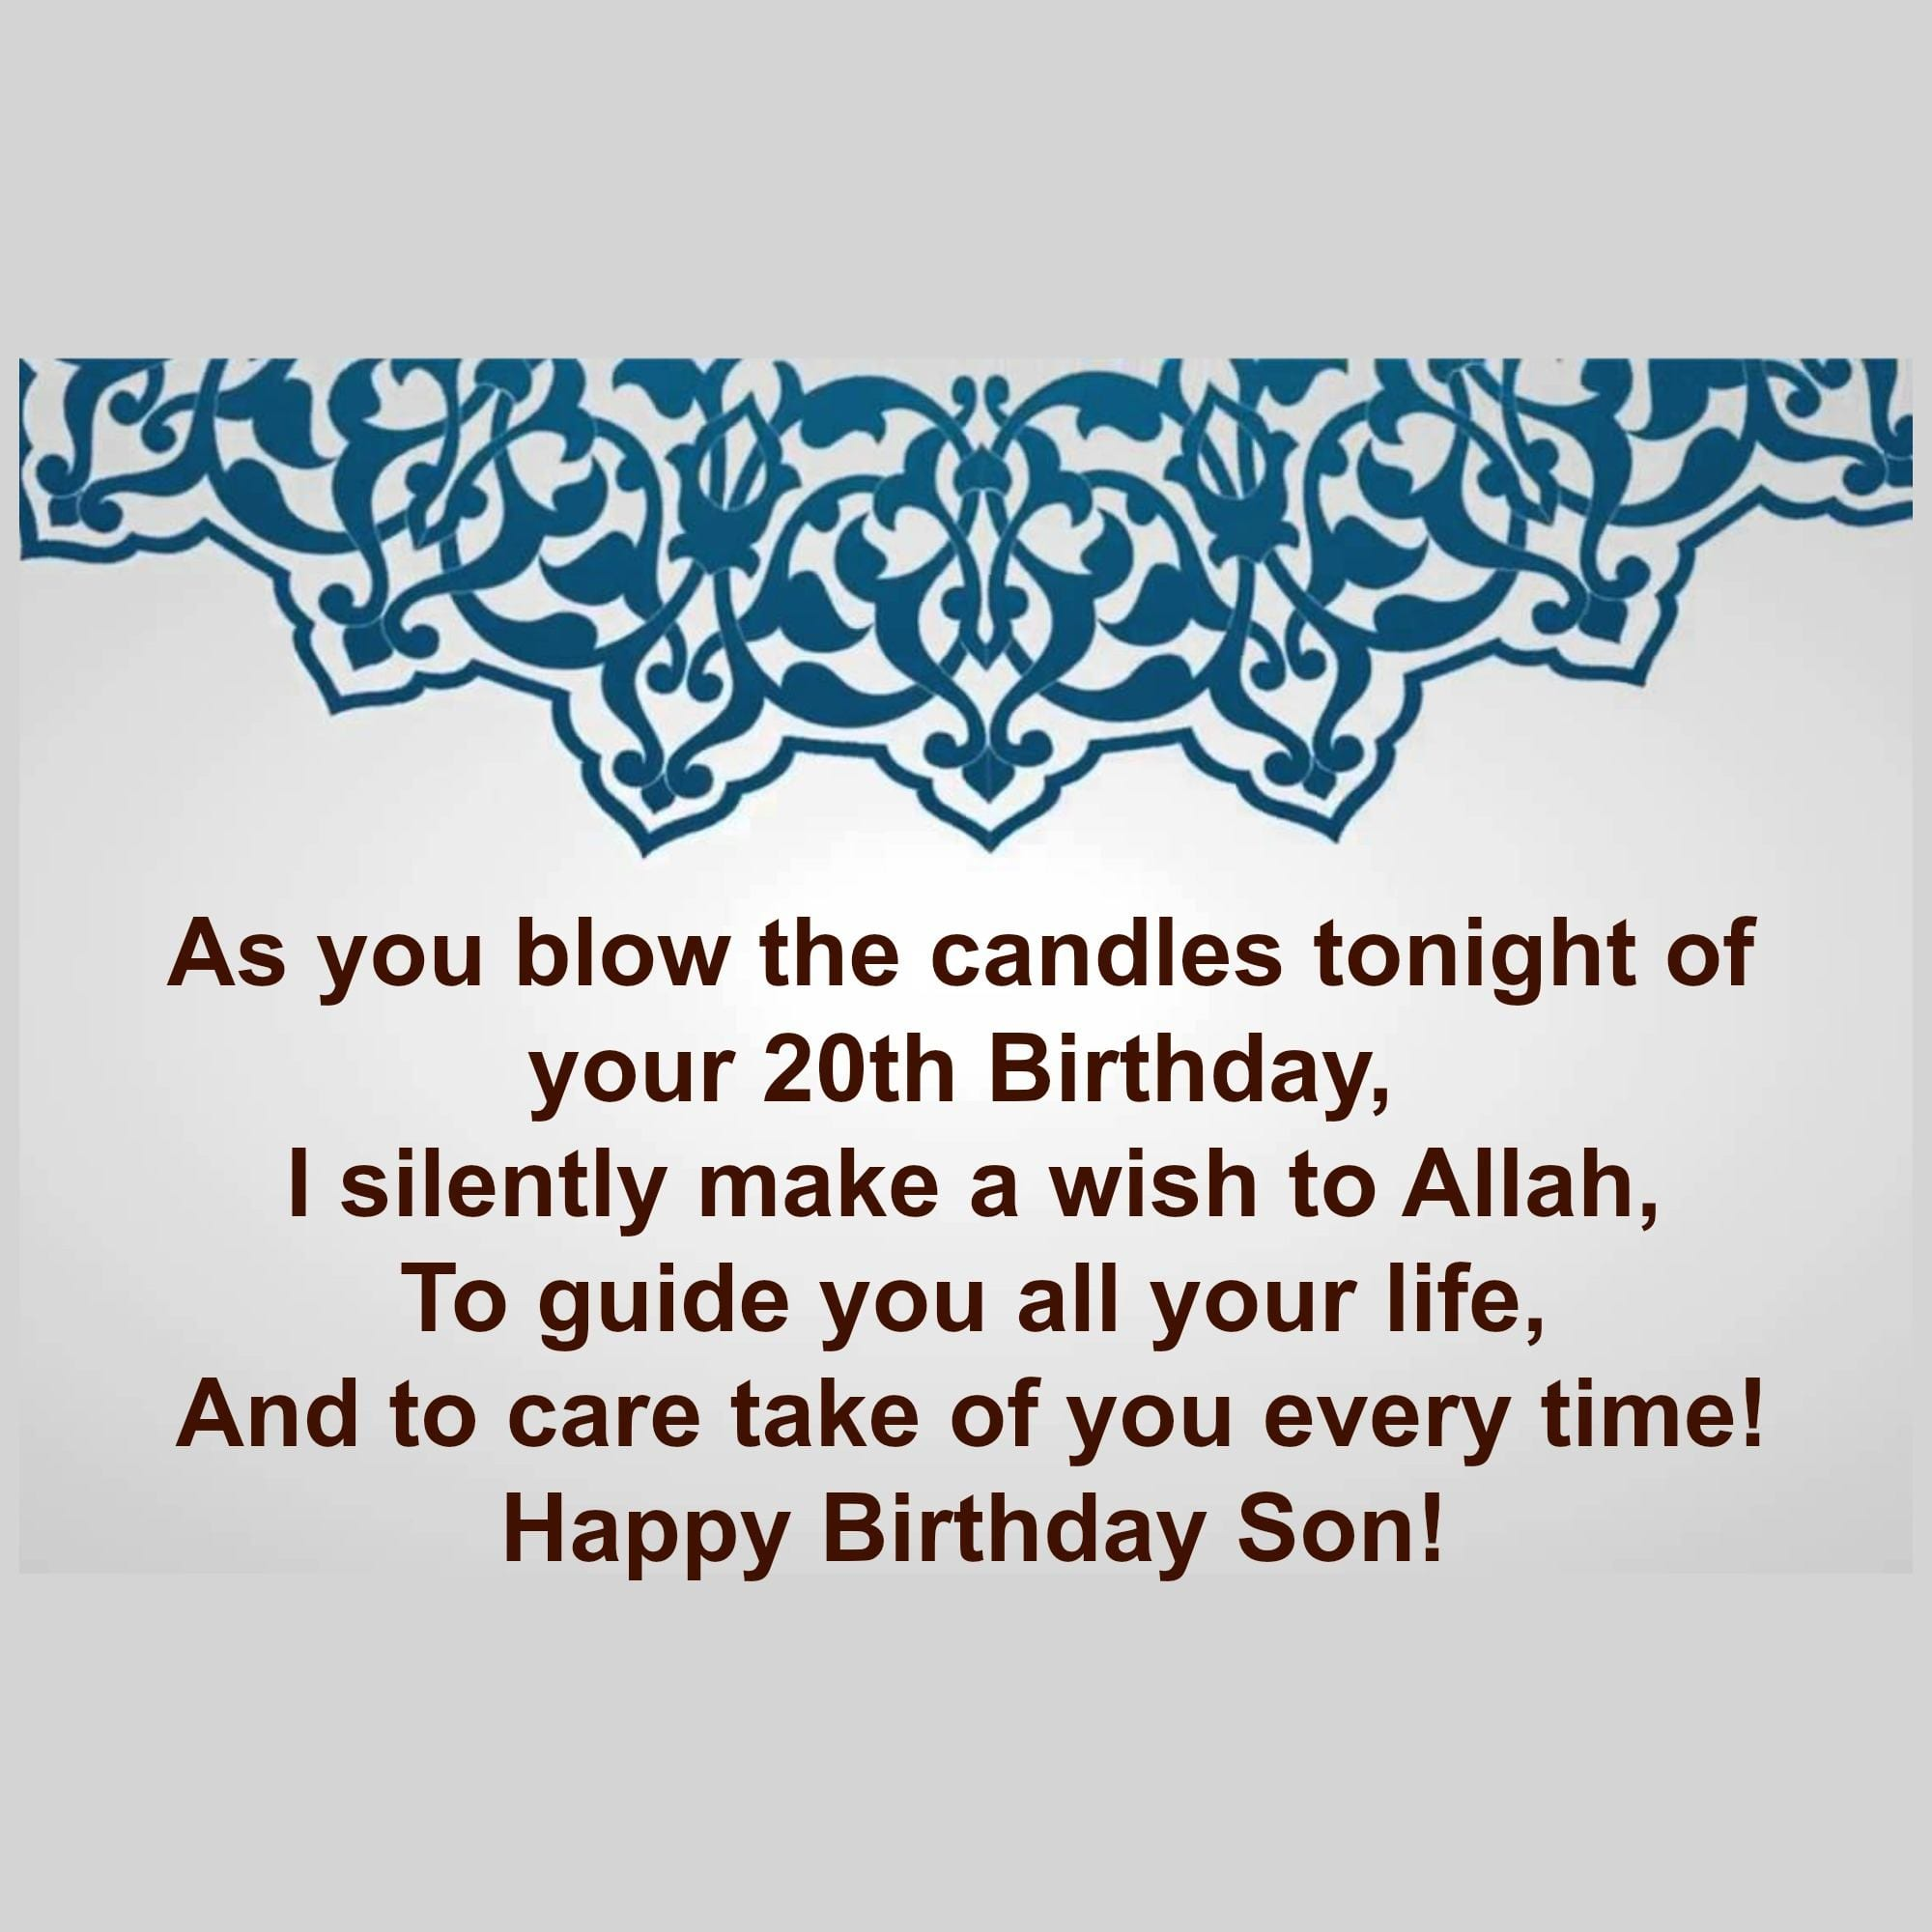 50 islamic birthday and newborn baby wishes messages quotes kristyandbryce Image collections